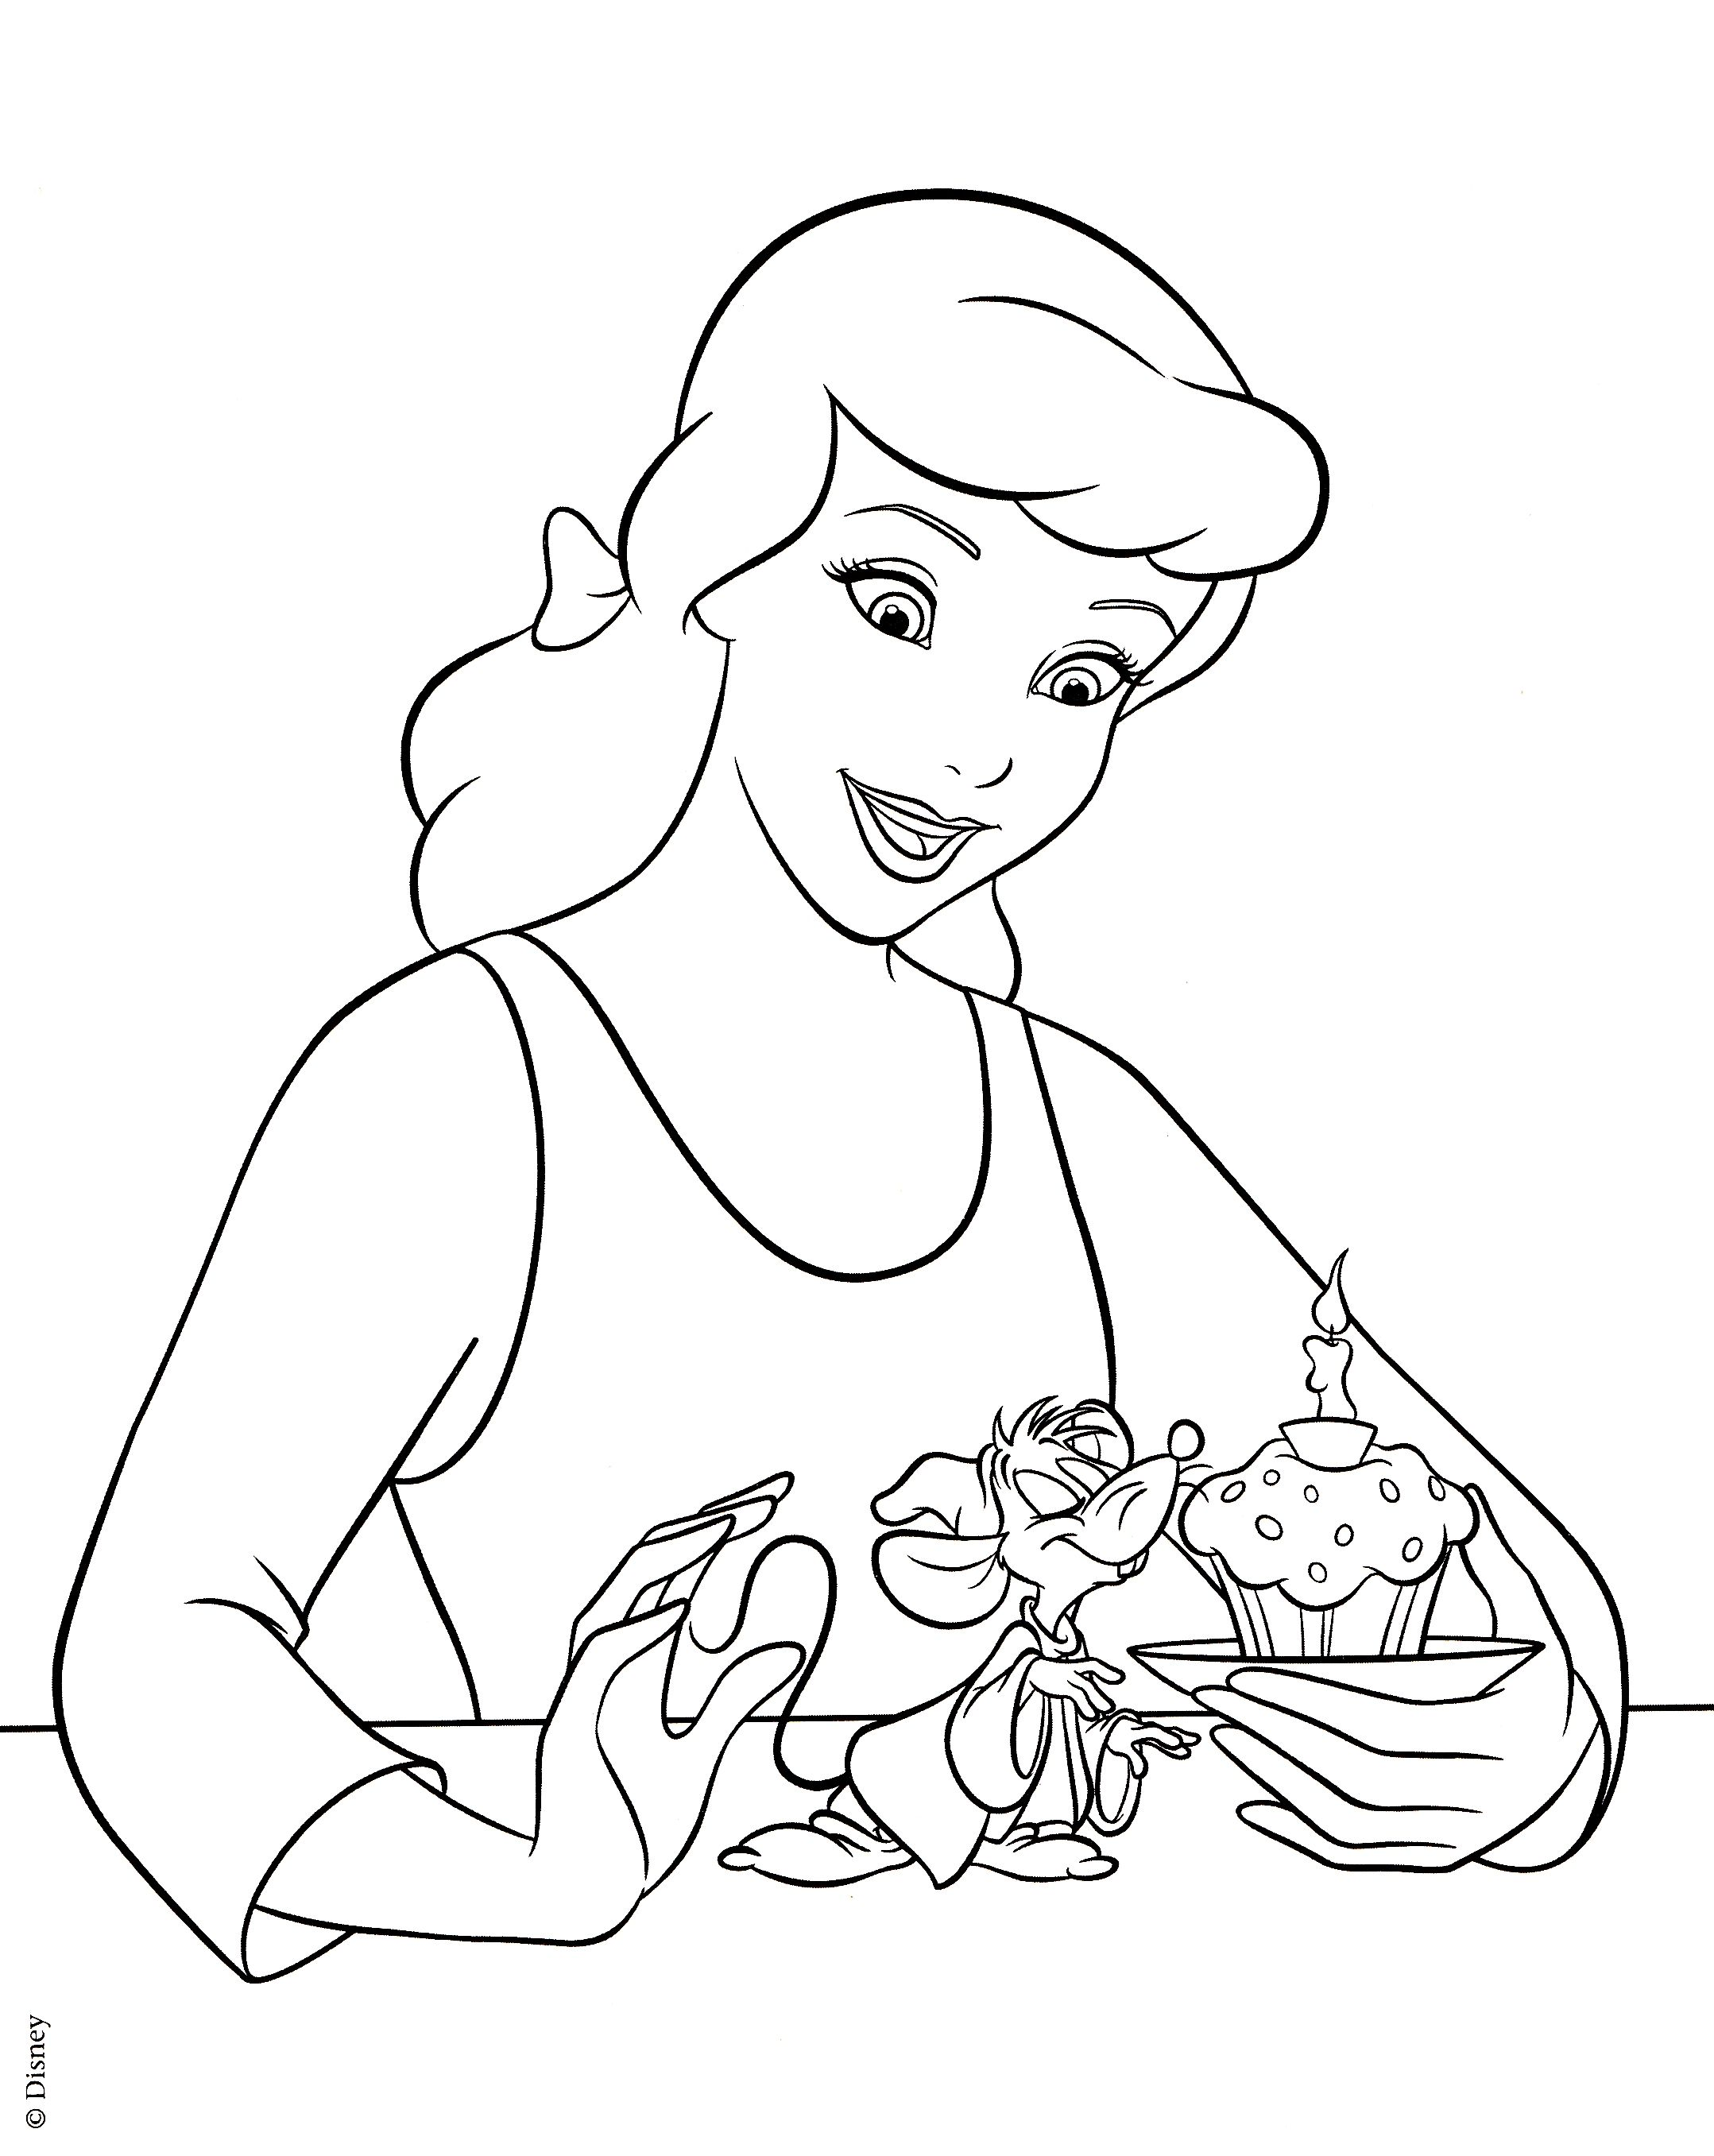 Gallery For gt; Disney Princess Coloring Pages Cinderella To ...